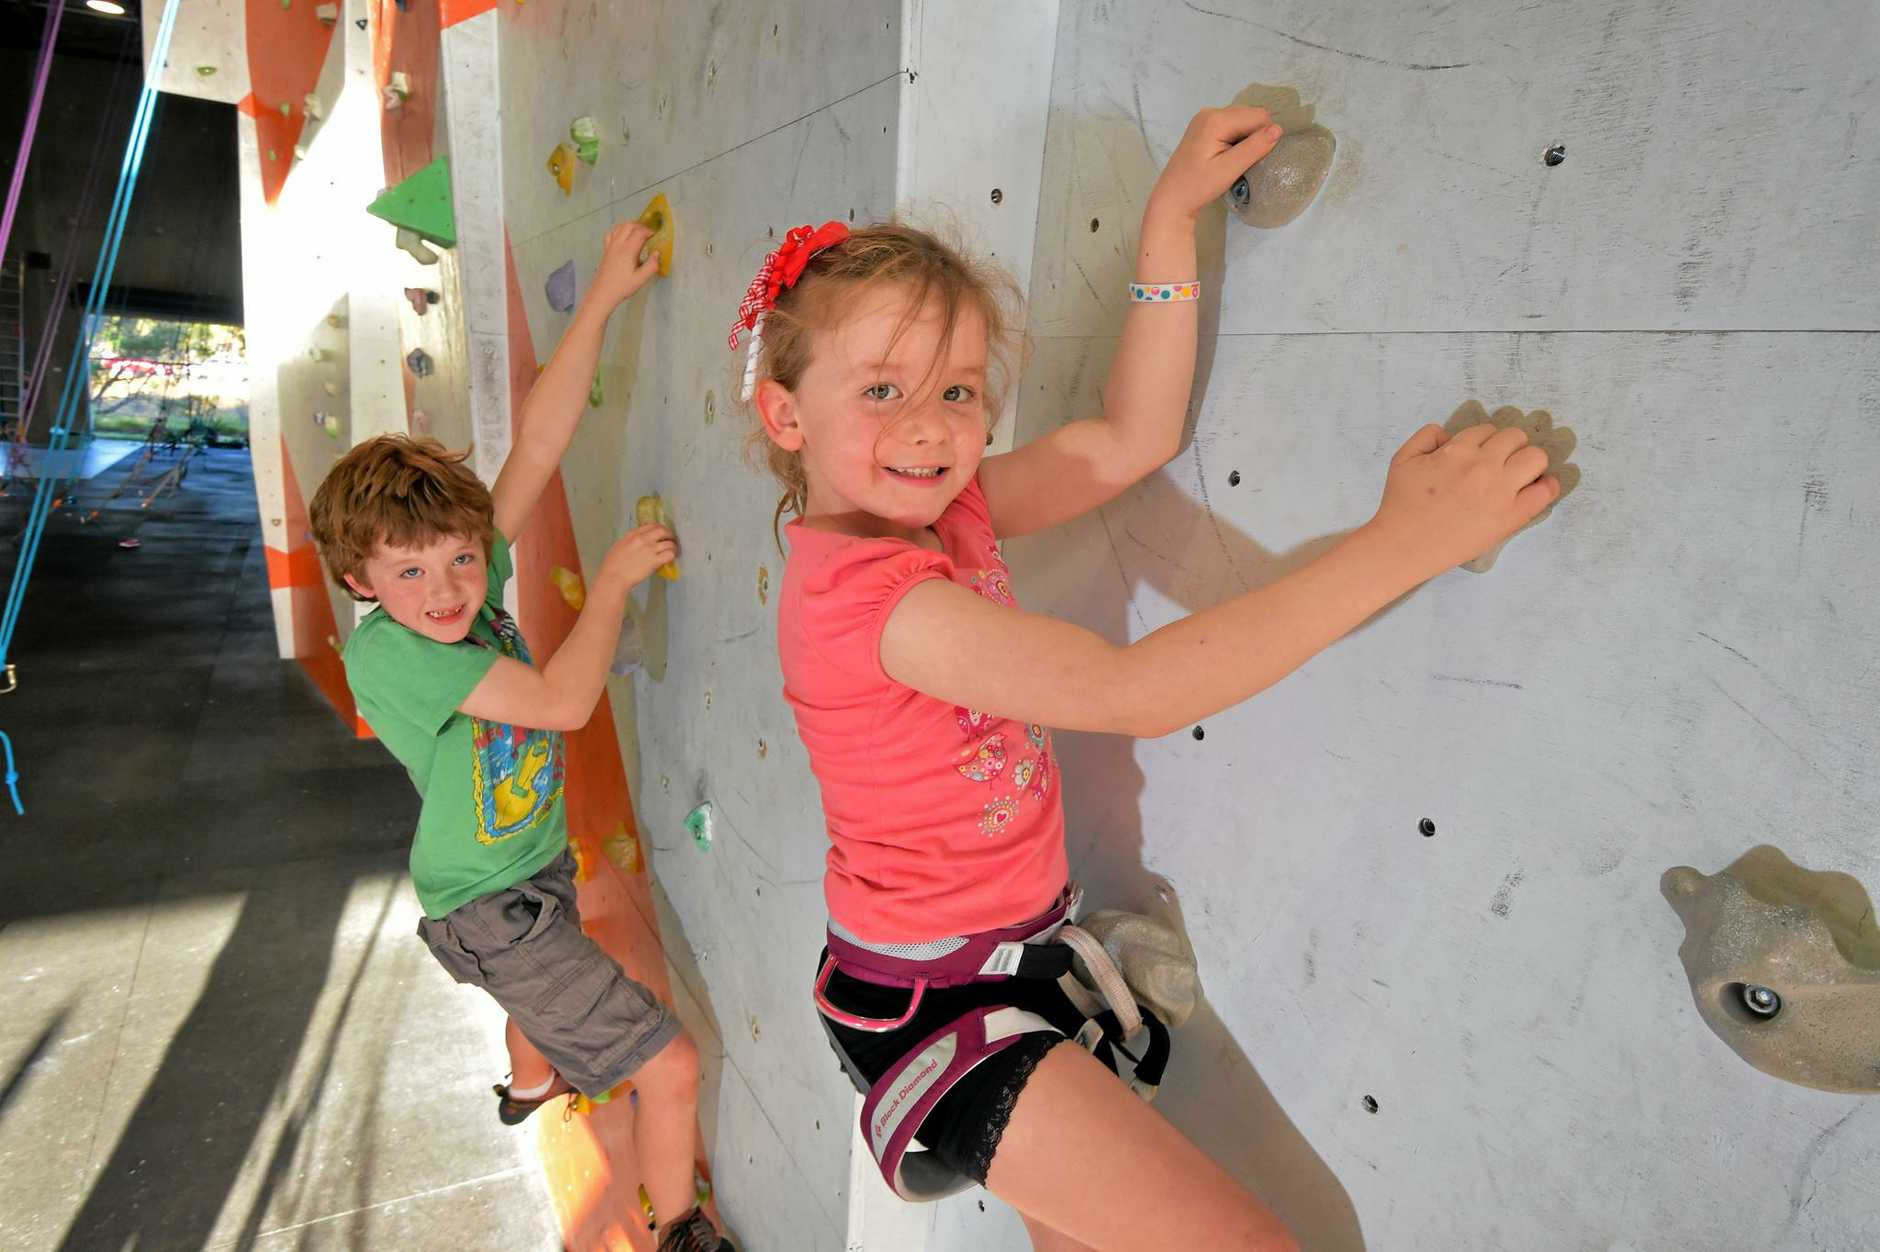 Declan, 8, and Freya Goldston, 5, at the Rockit Climbing Gym at Warana.